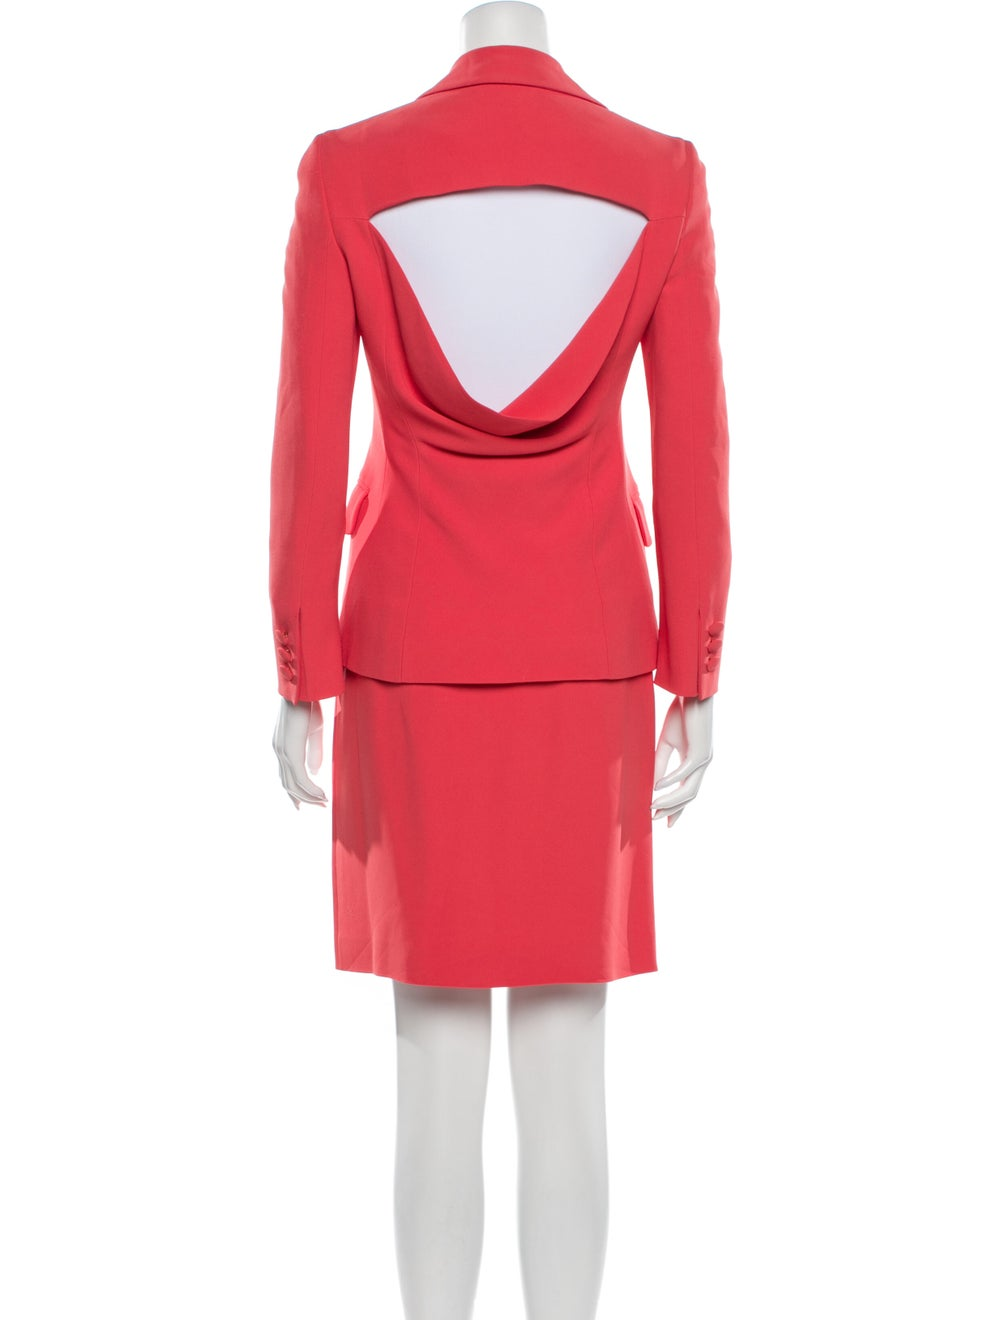 Moschino Skirt Suit Pink - image 3